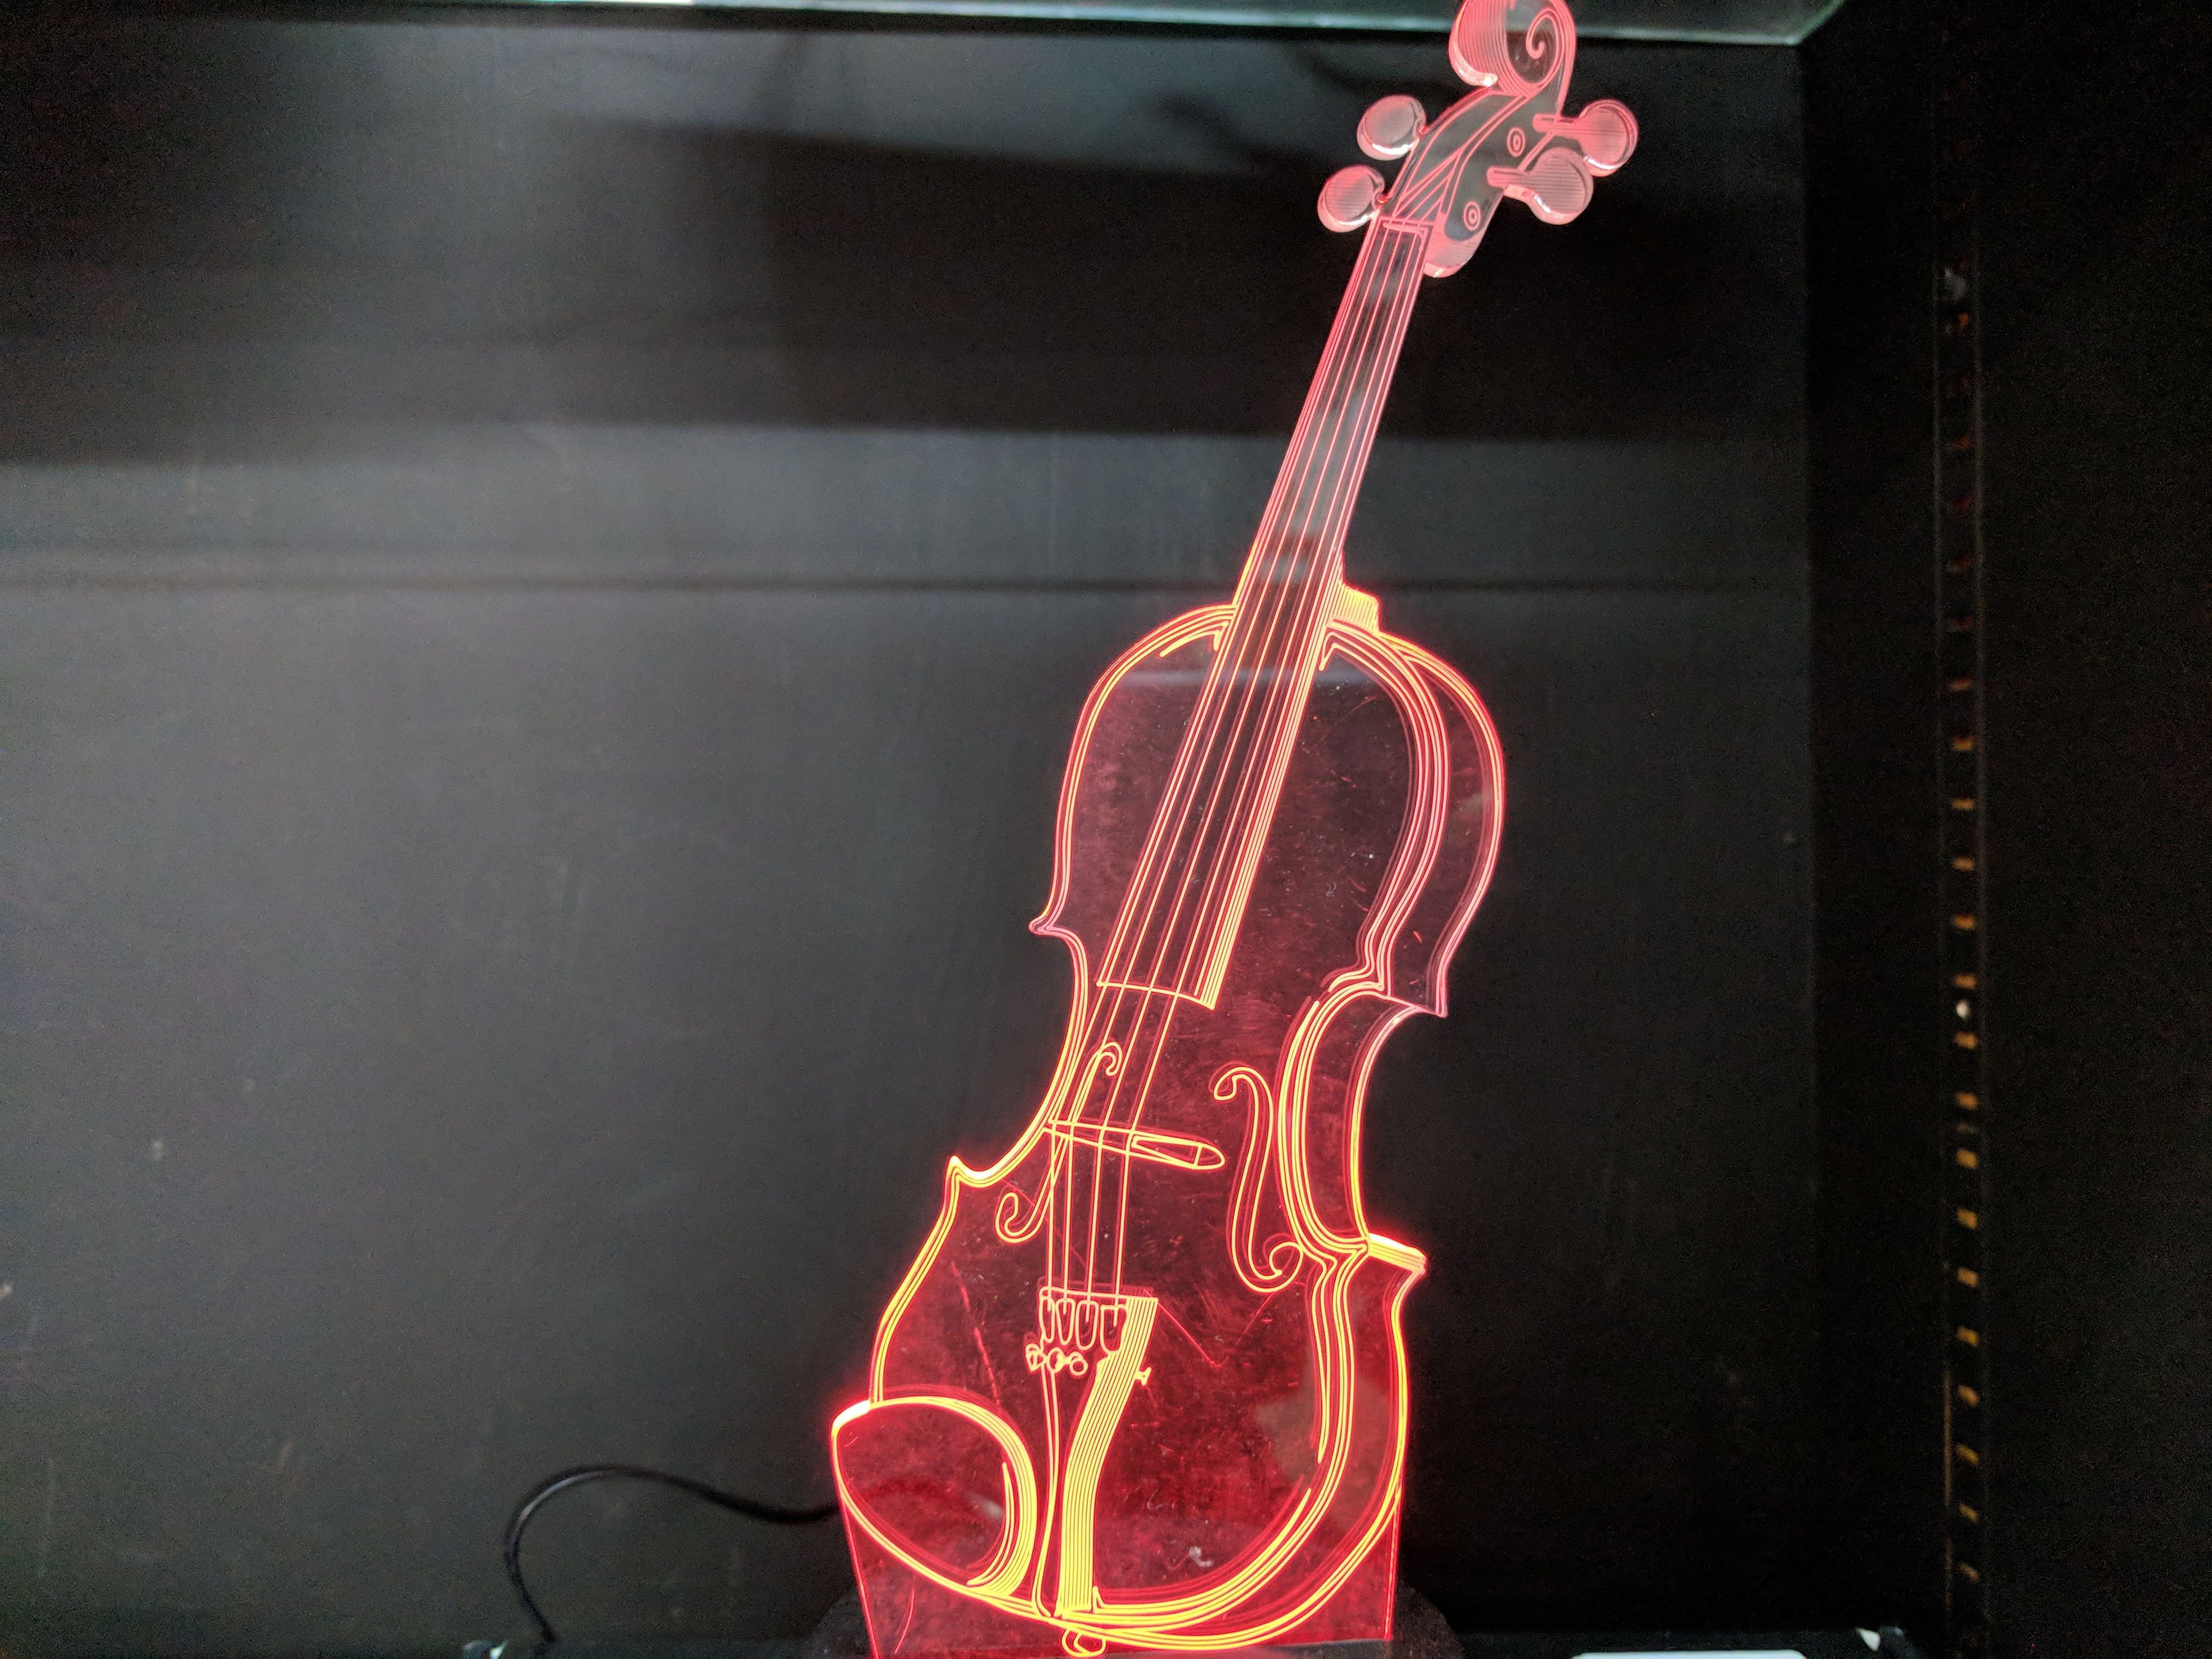 Acrylic 3d Illusion Music Instrument Led Glow Lamps Choose A Color Or Have Them Change Between Eight Different Colors 3d Illusion Lamp 3d Illusions Glow Lamp